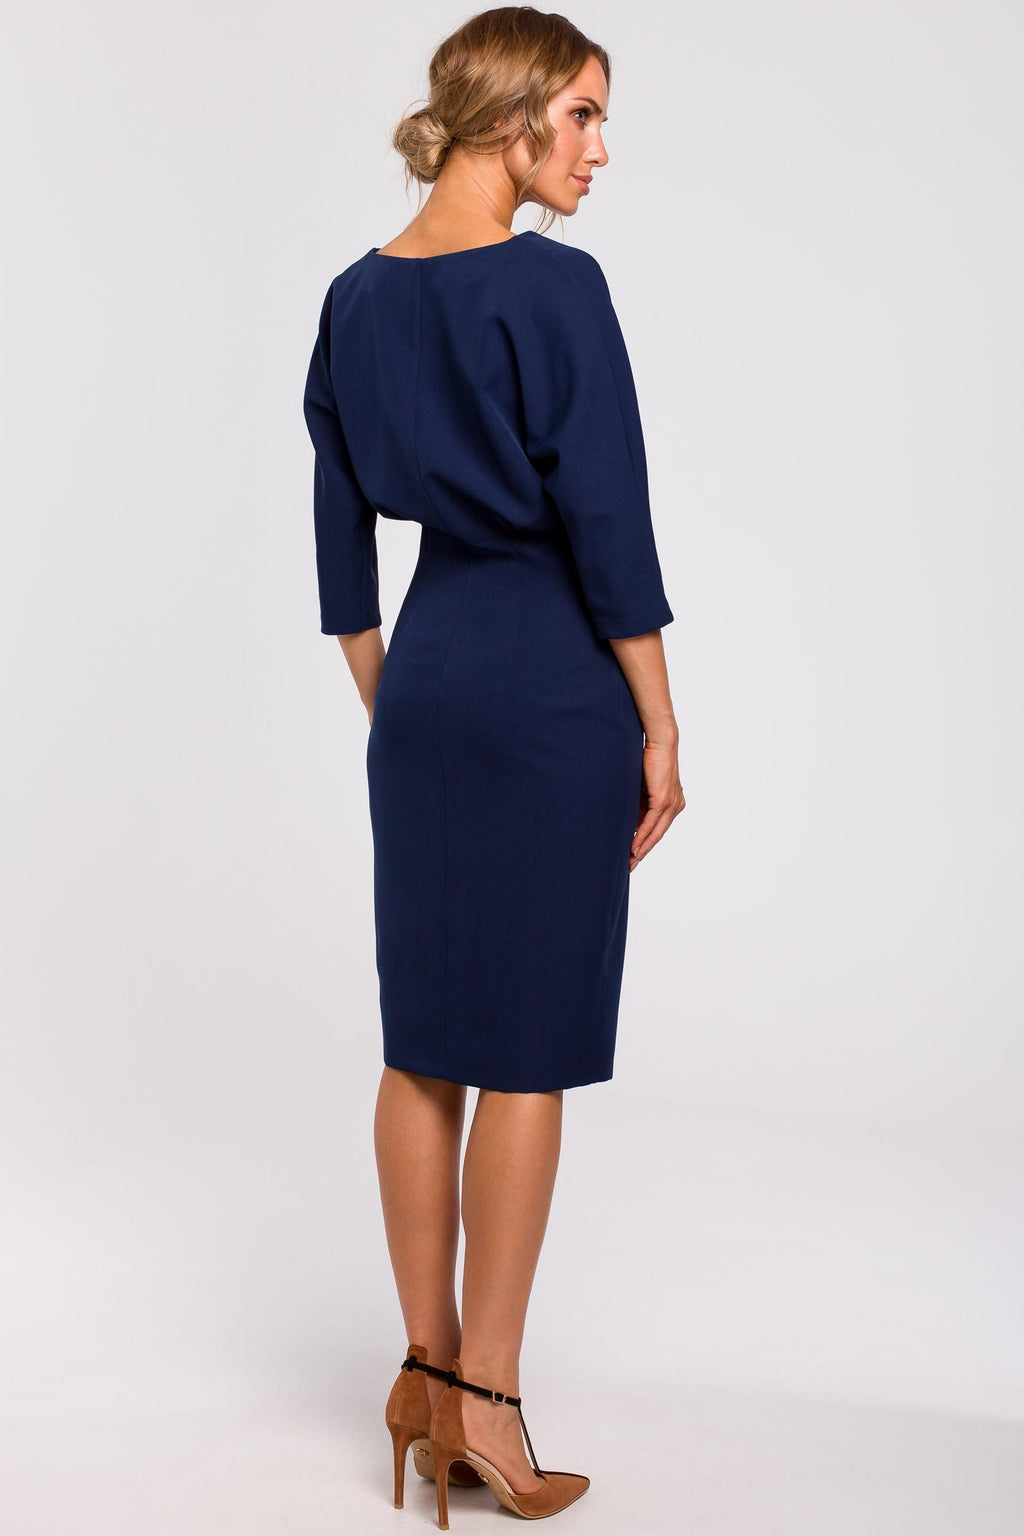 Navy Blue Batwing Top Pencil Dress - So Chic Boutique